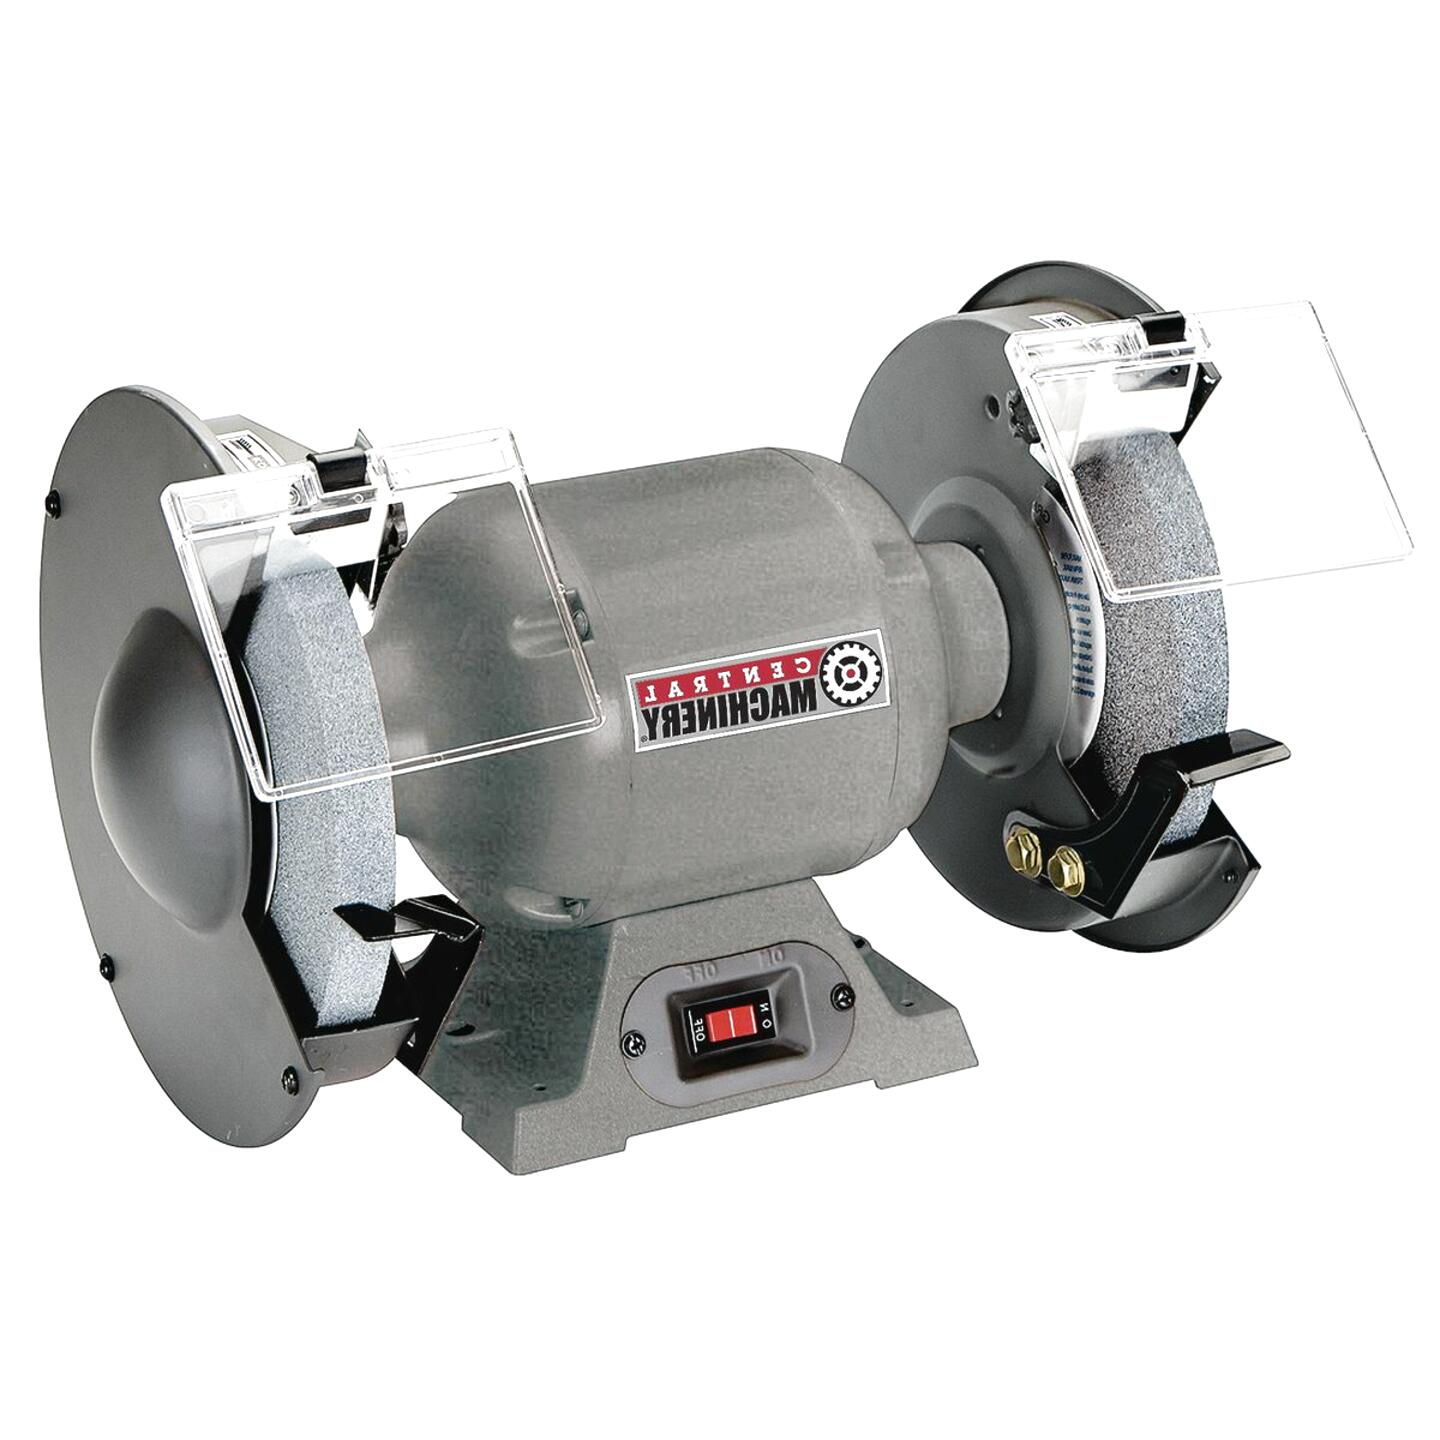 Groovy Bench Grinder For Sale In Uk 96 Used Bench Grinders Machost Co Dining Chair Design Ideas Machostcouk